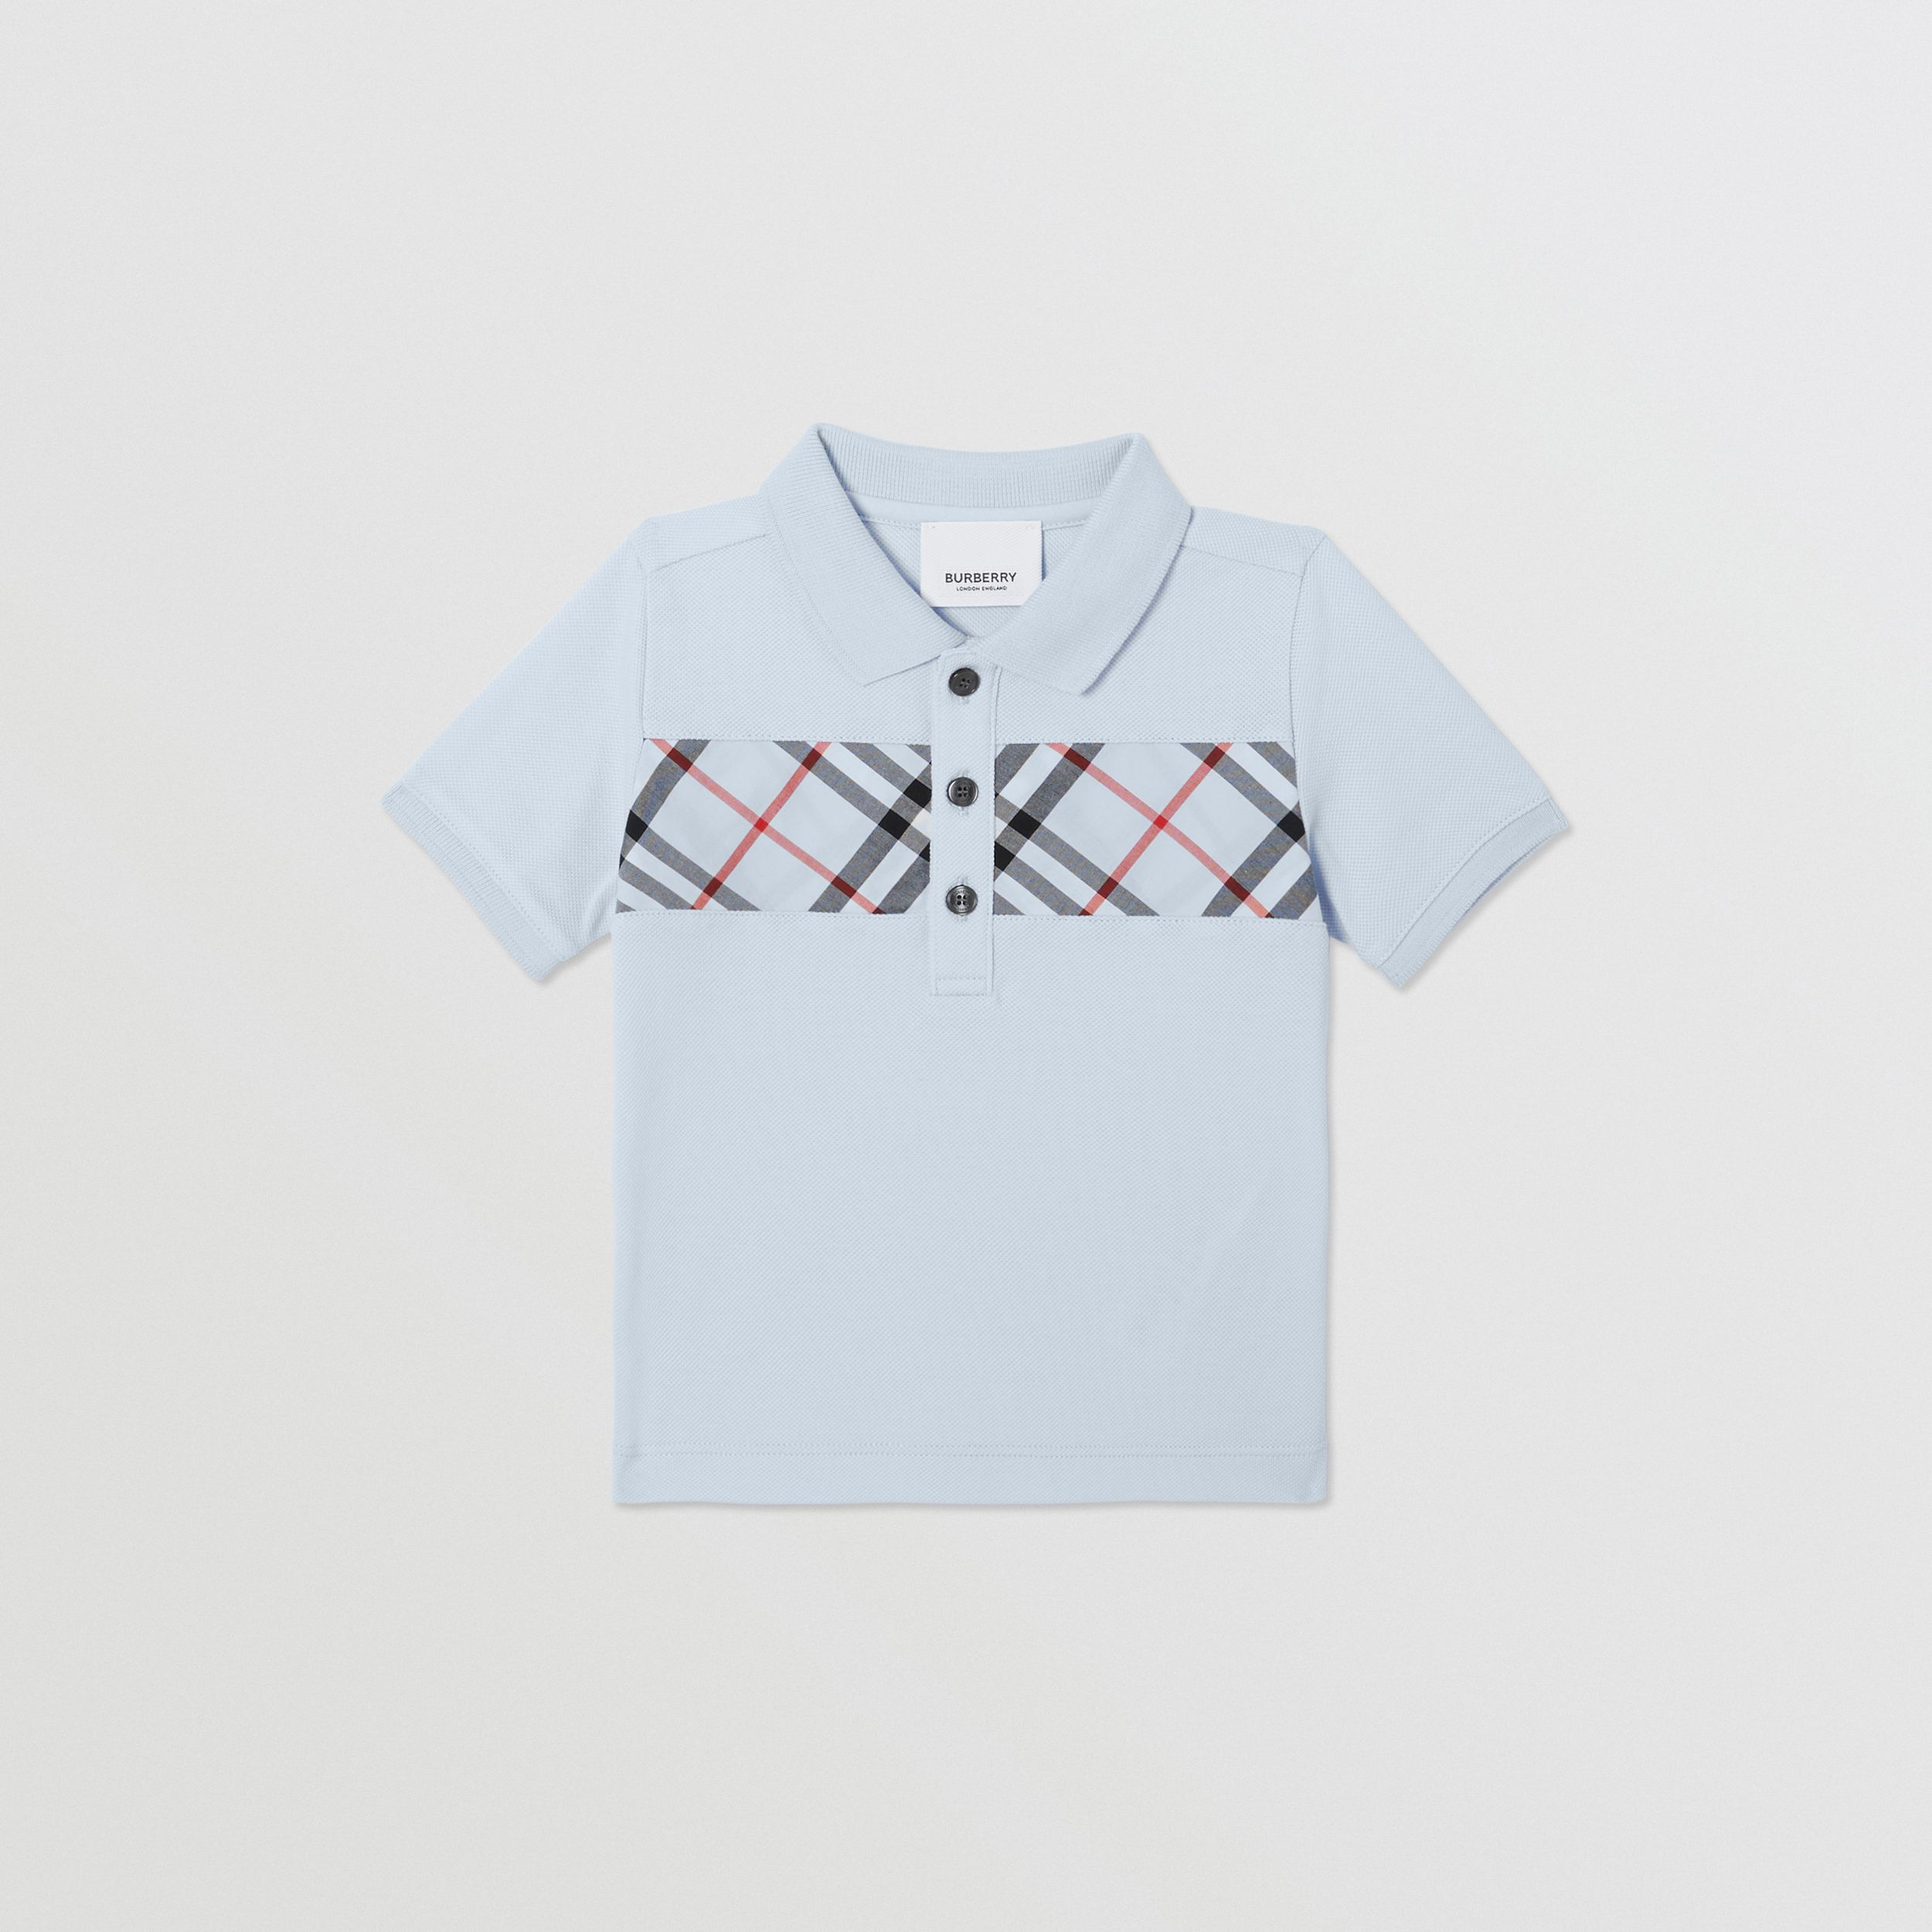 Vintage Check Panel Cotton Polo Shirt in Light Blue - Children | Burberry - 1